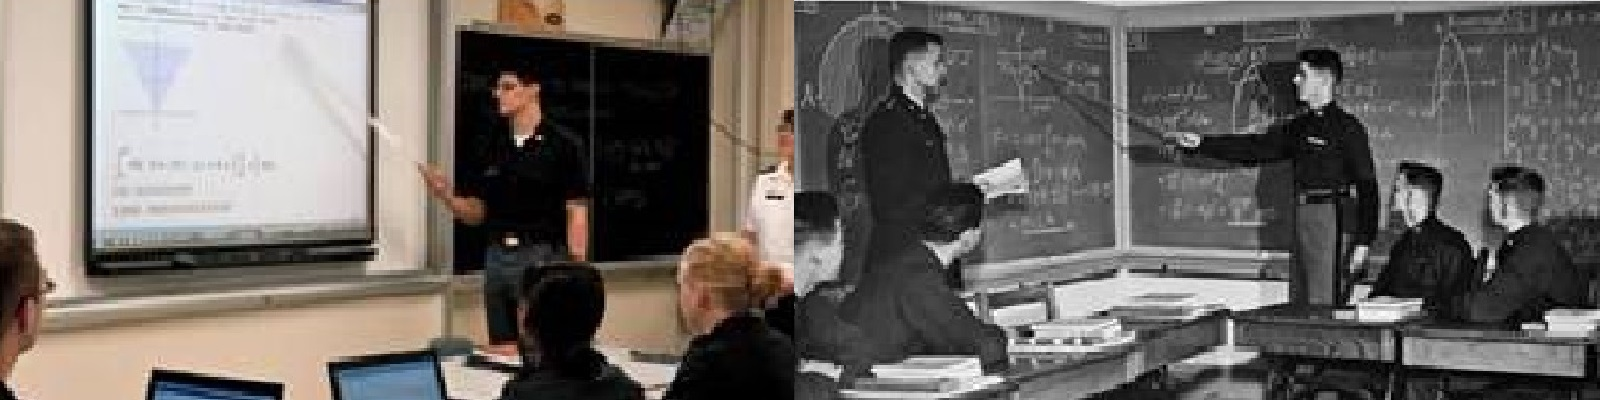 Cadets in math classrooms.